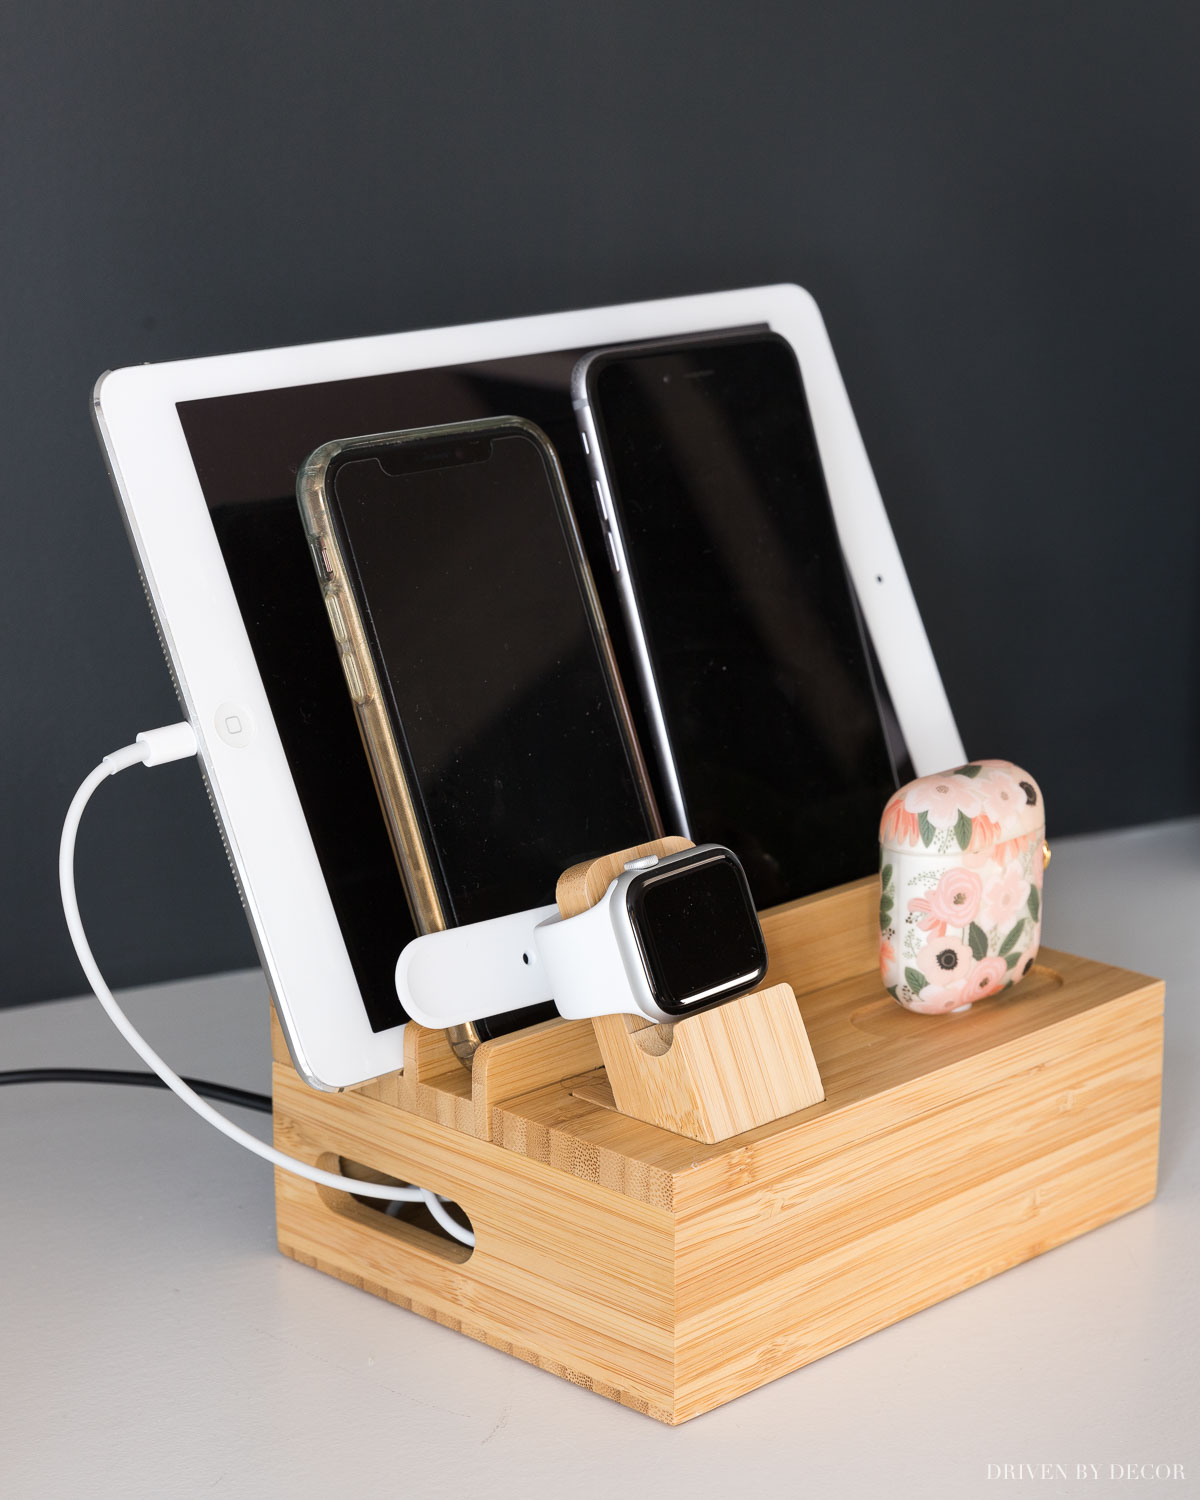 Our electronics organizer and charging station - helps so much with cord clutter!